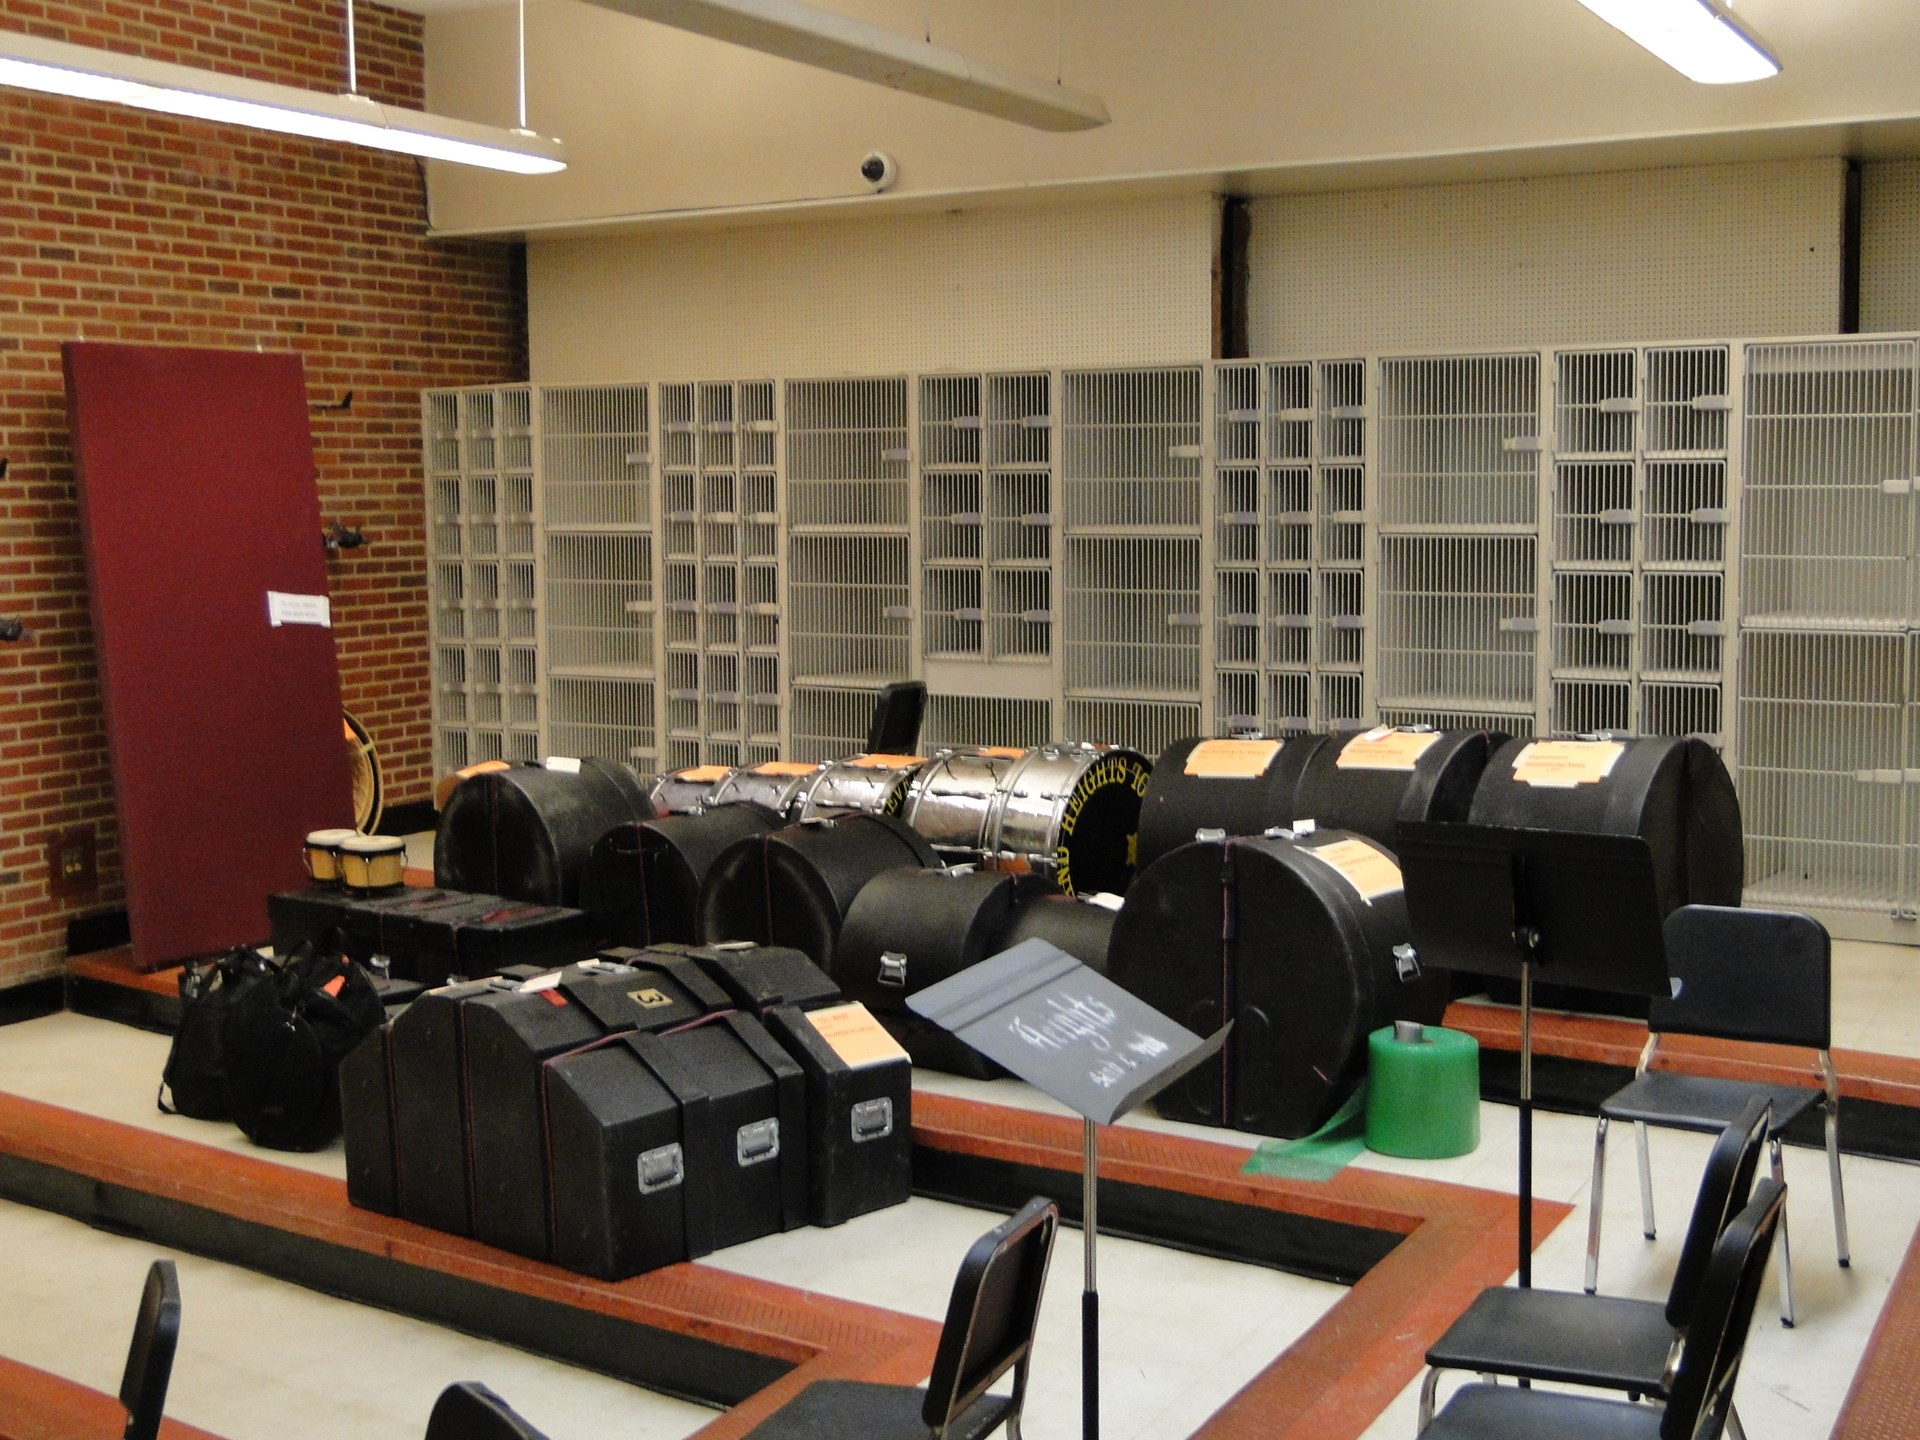 Instruments ready for transport in the Instrumental Music Dept.